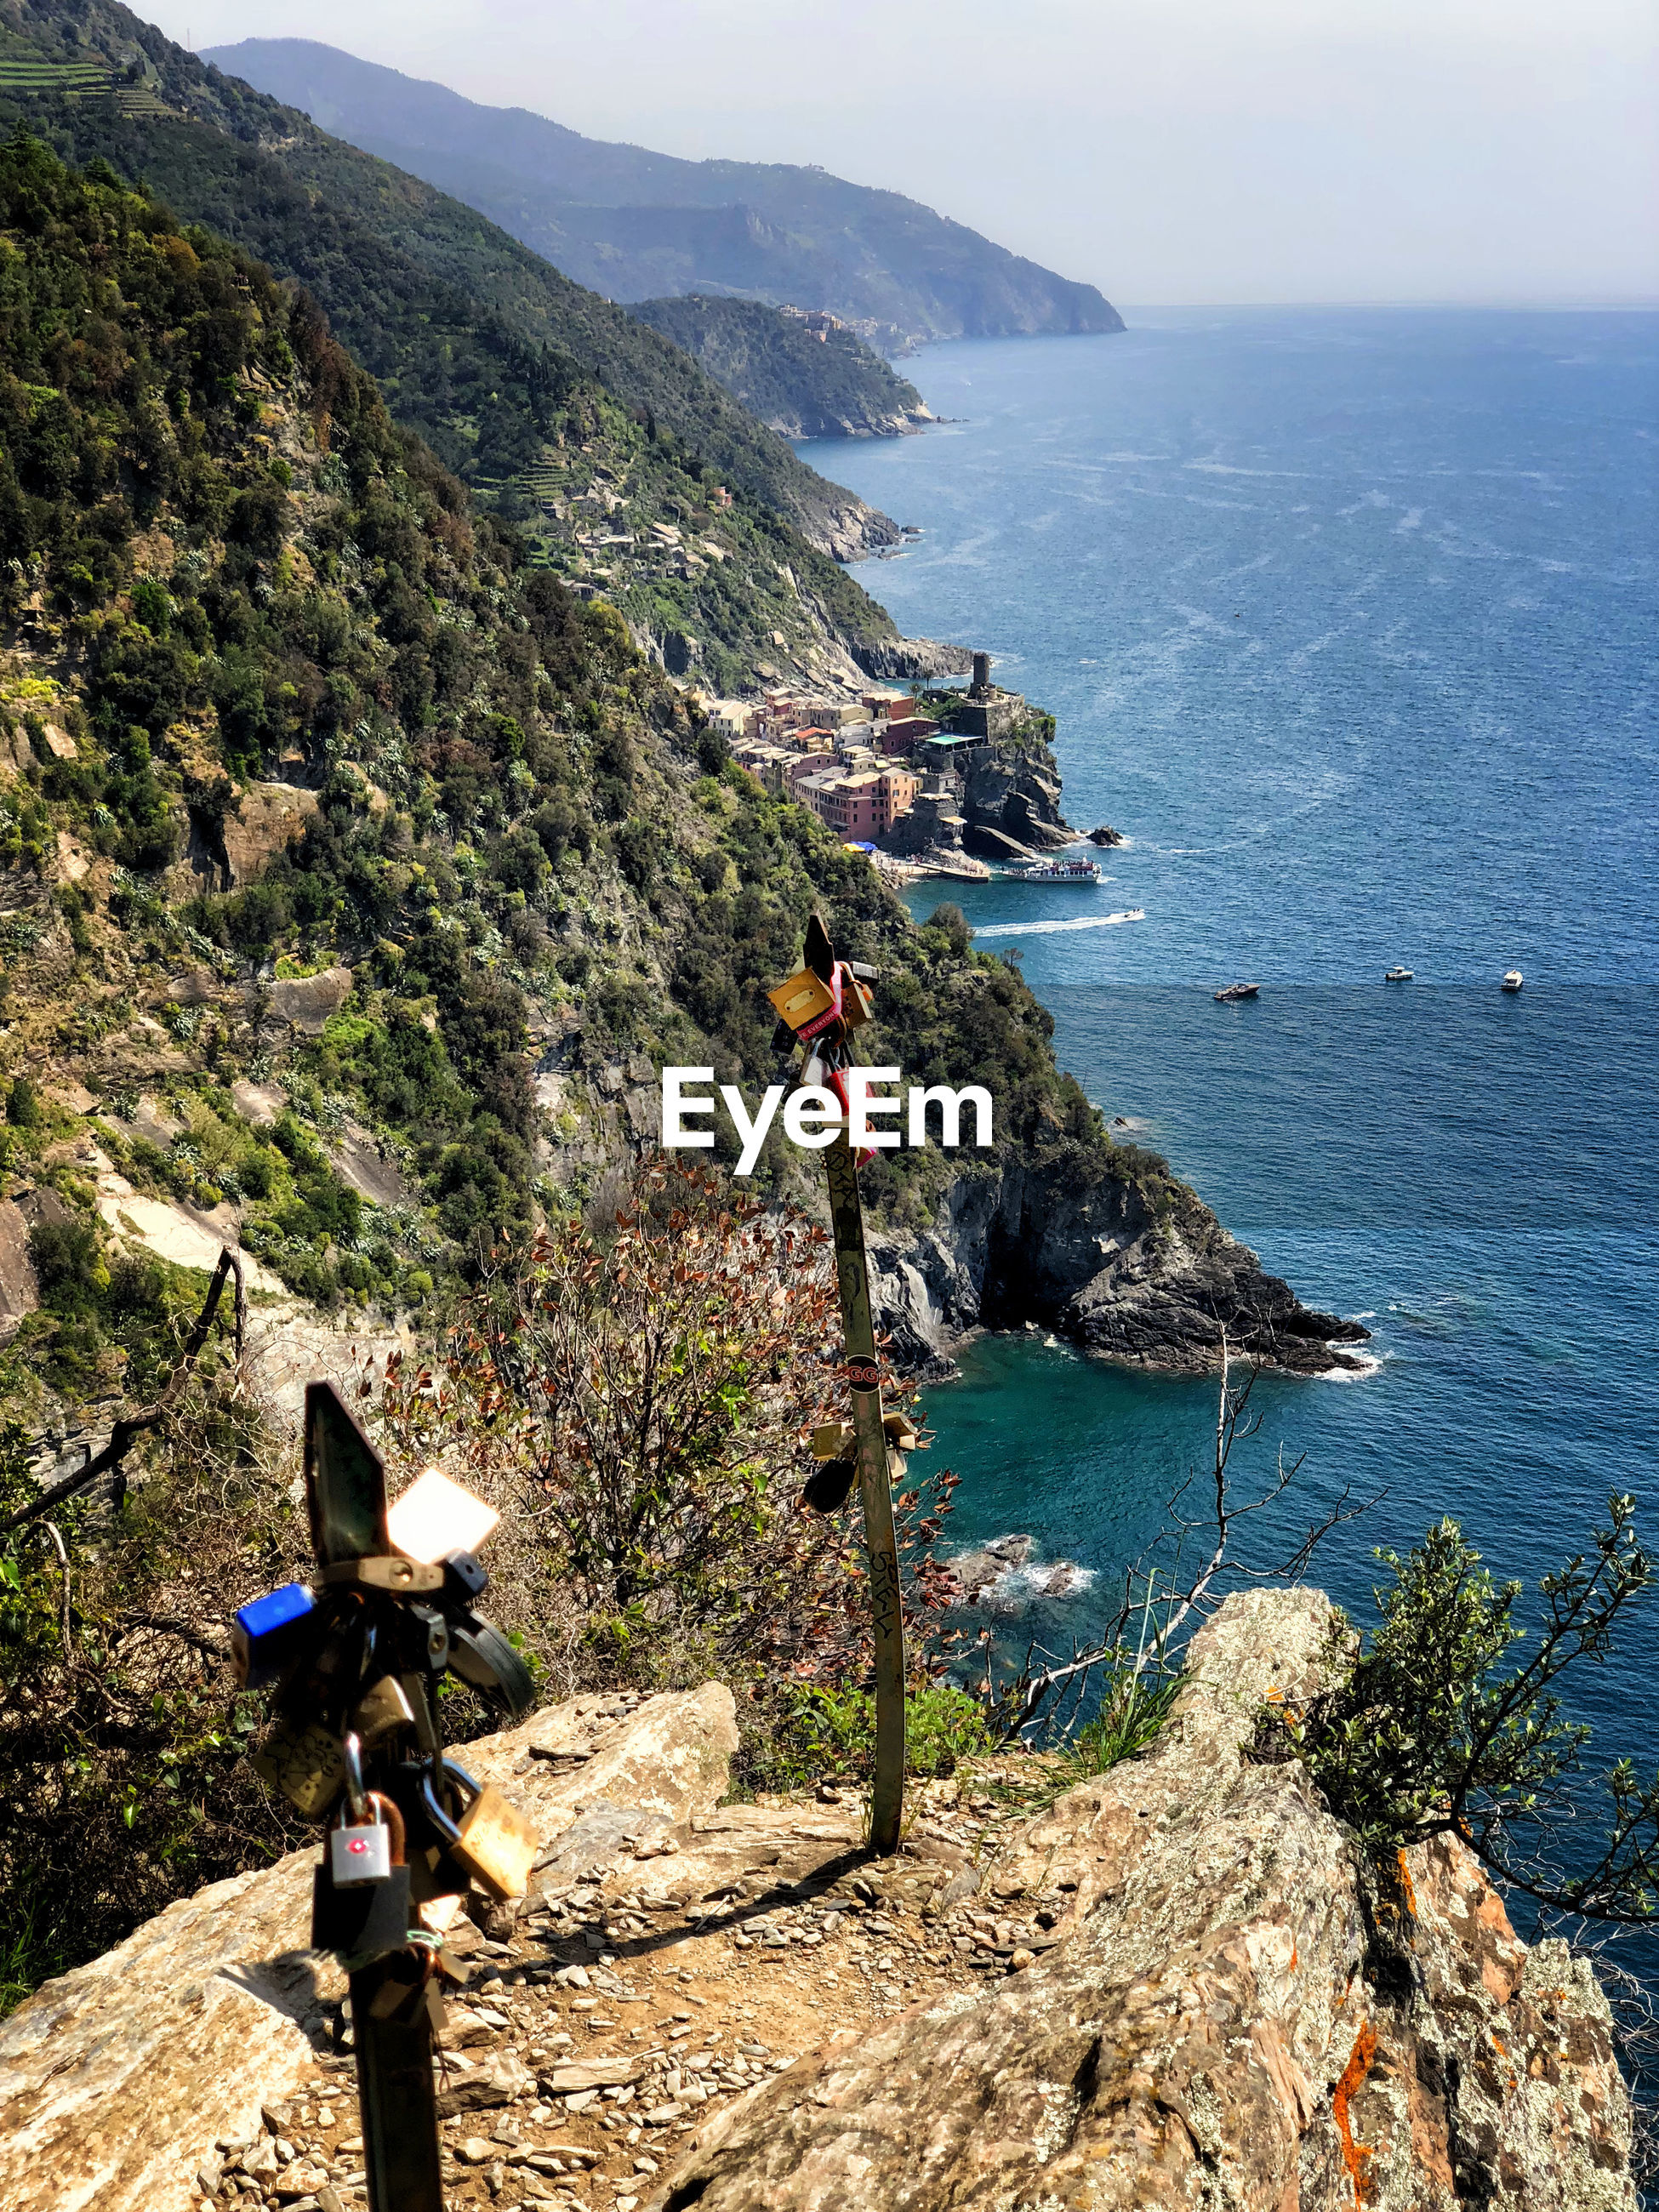 HIGH ANGLE VIEW OF PEOPLE LOOKING AT SEA AGAINST MOUNTAIN